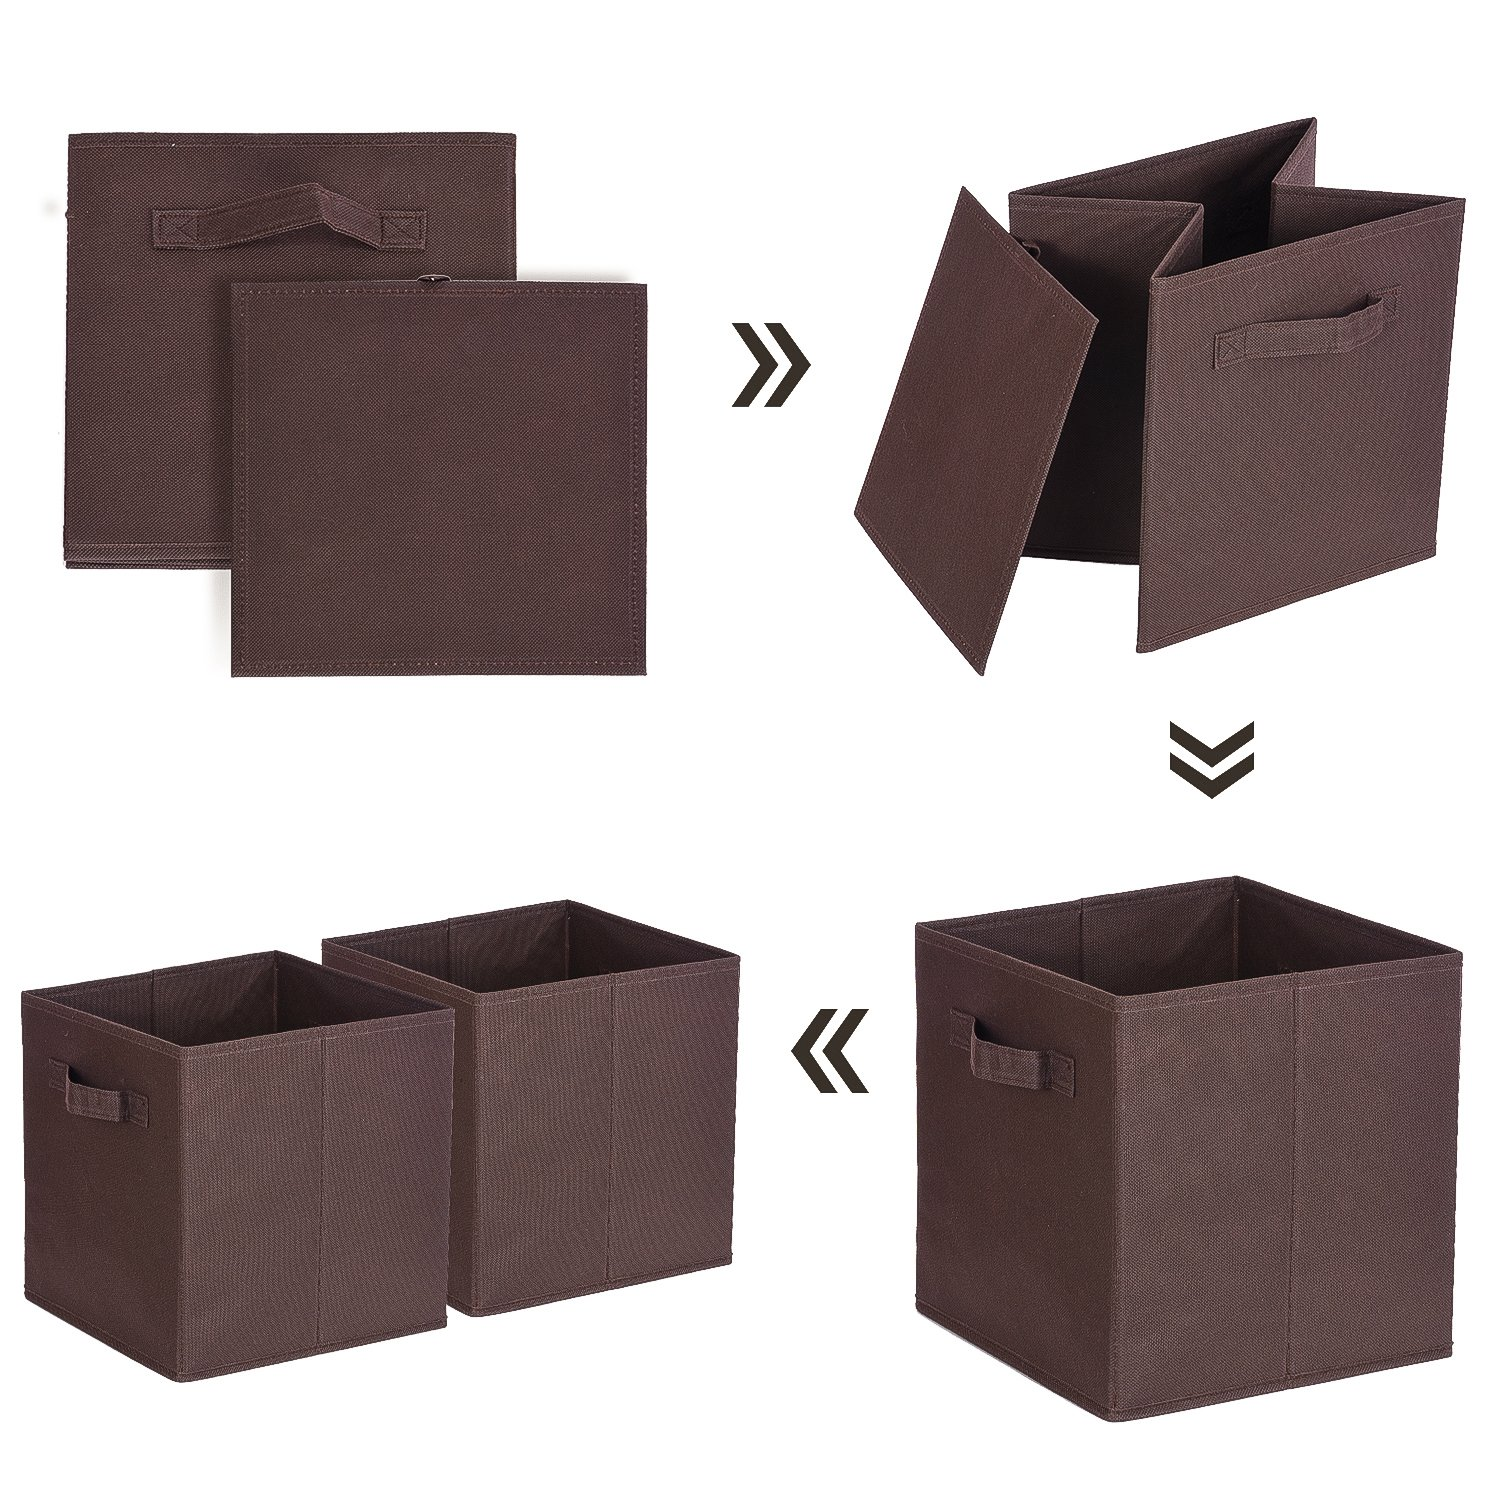 Black MaidMAX Cloth Storage Bin with Dual Handles for Home Closet Nursery Drawers Organizer Set of 6 903007 Foldable 10.5/×10.5/×11/″